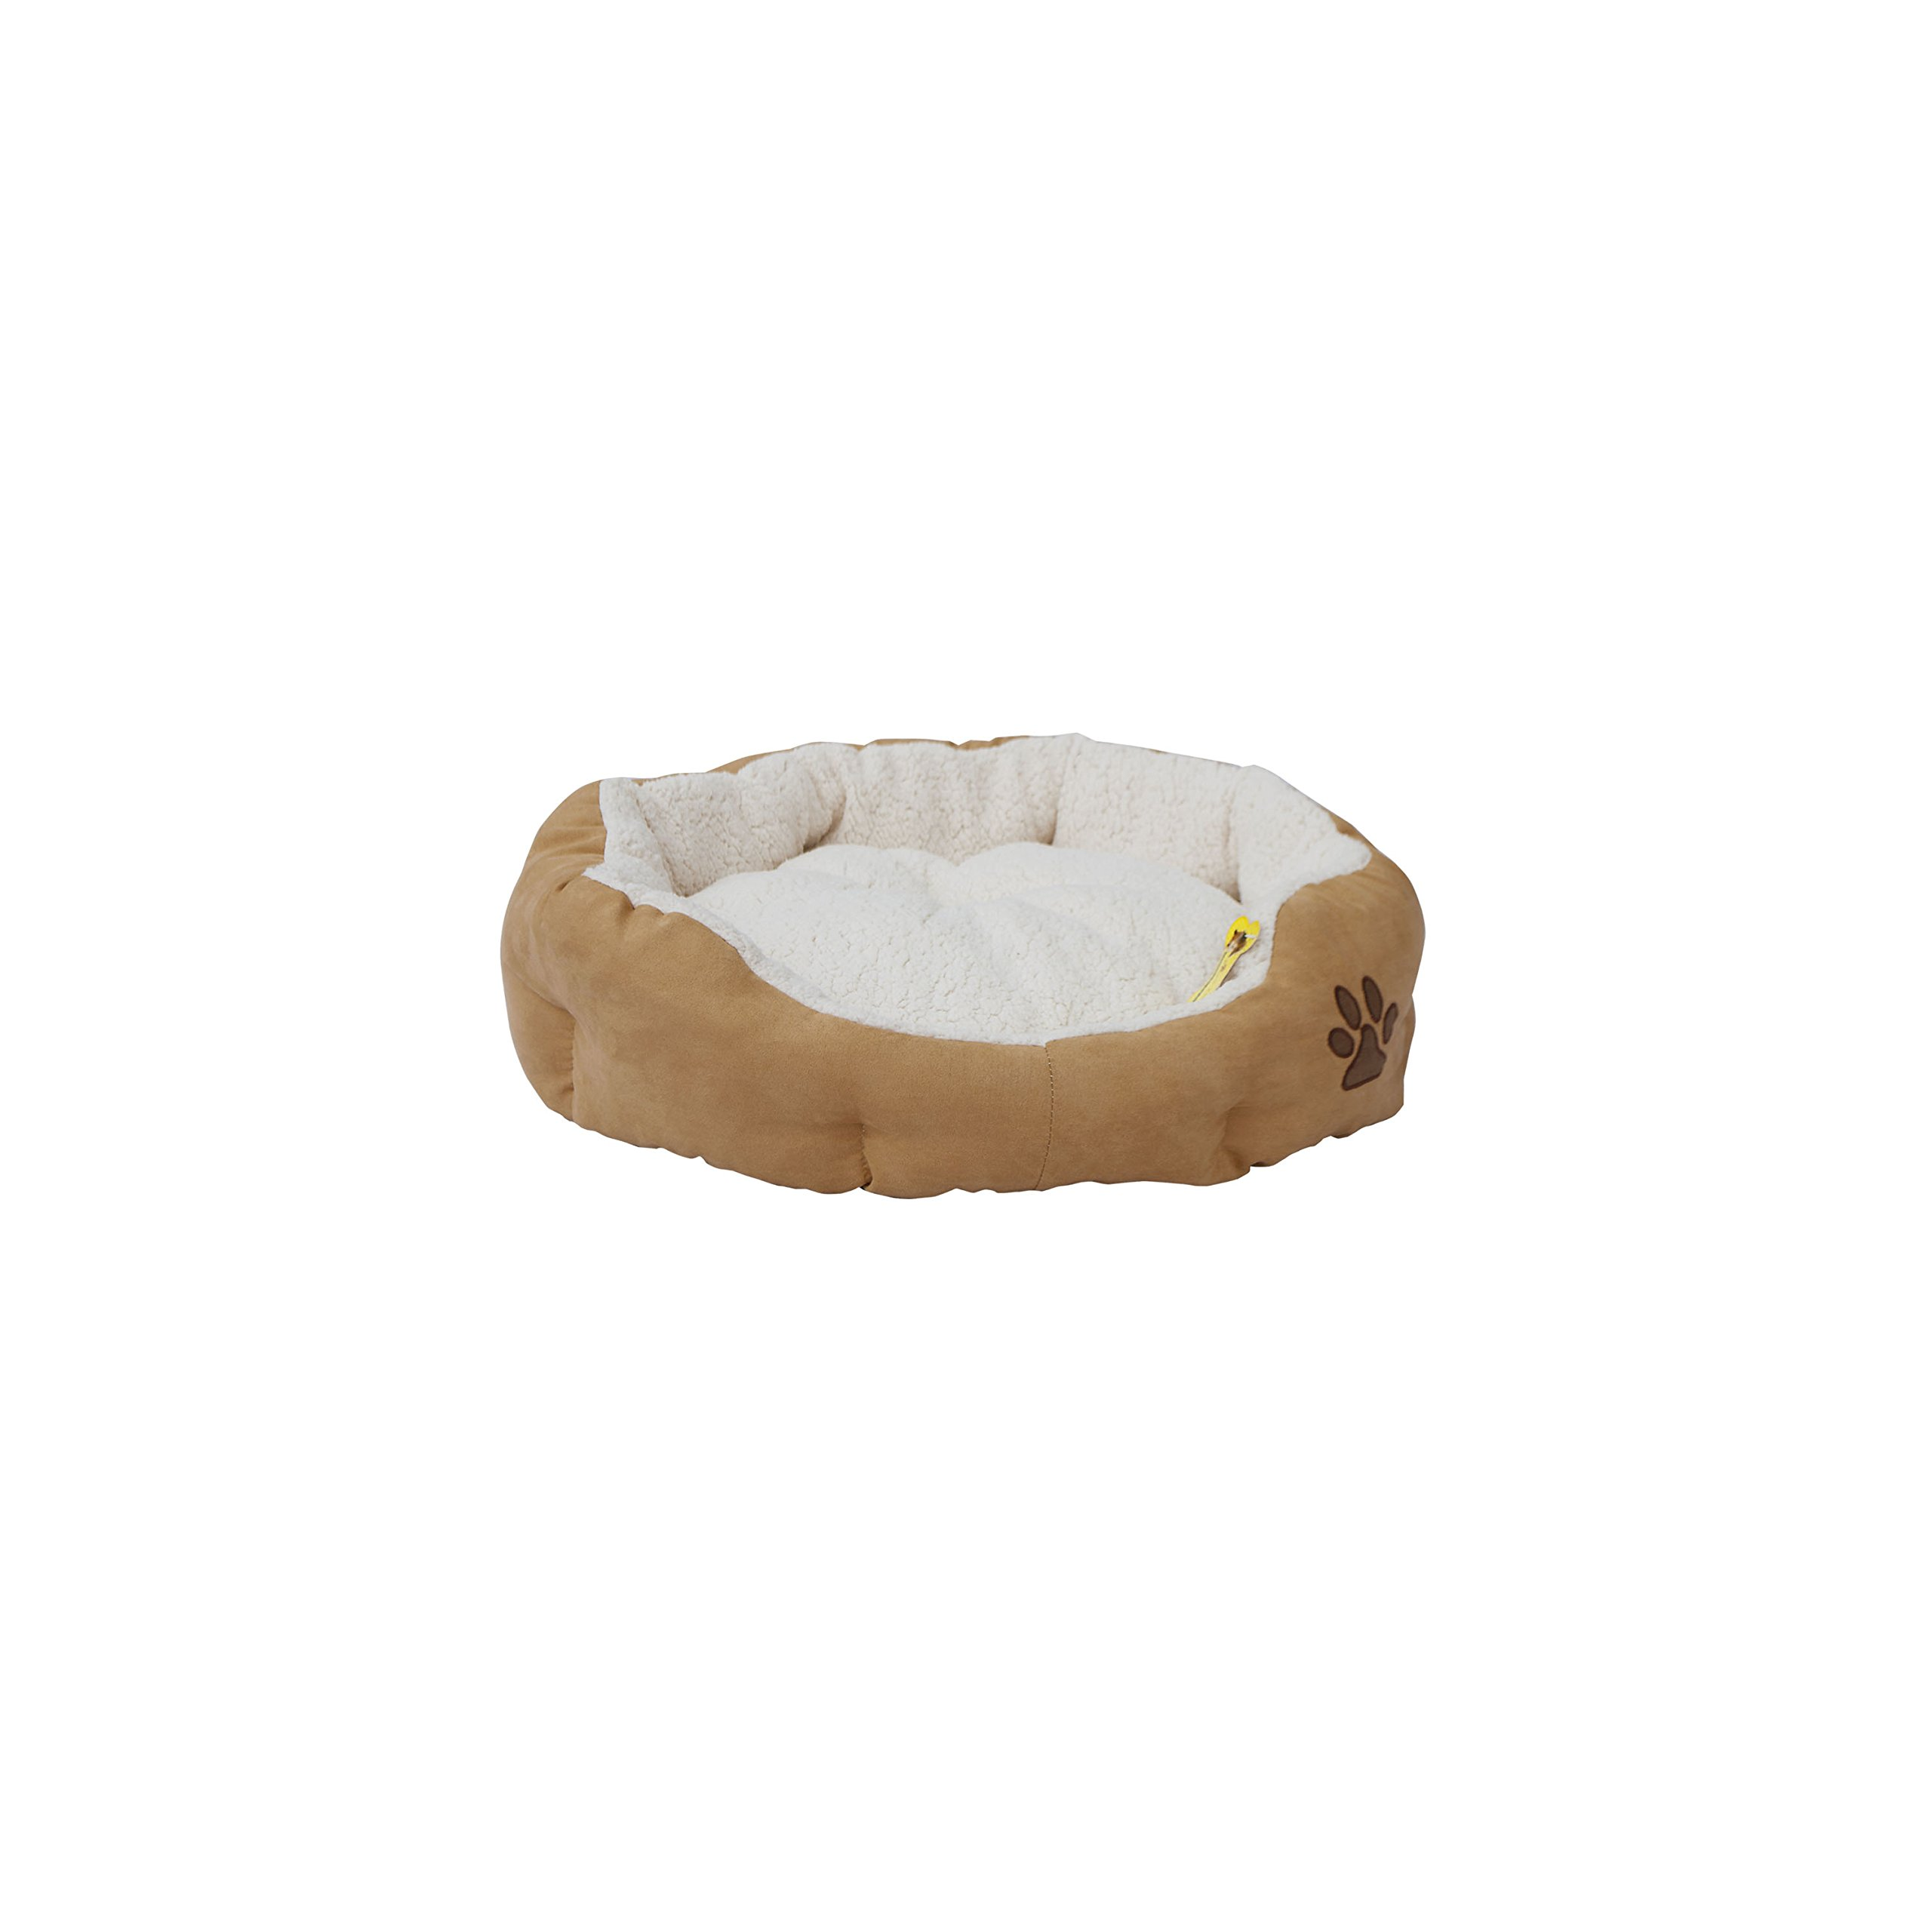 ALEKO PB02S Small Plush Pet Cushion Crate Bed for Dogs Cats Machine Washable Indoor Outdoor with Removable Insert Pillow 18 x 17 x 6 Inches Beige and White